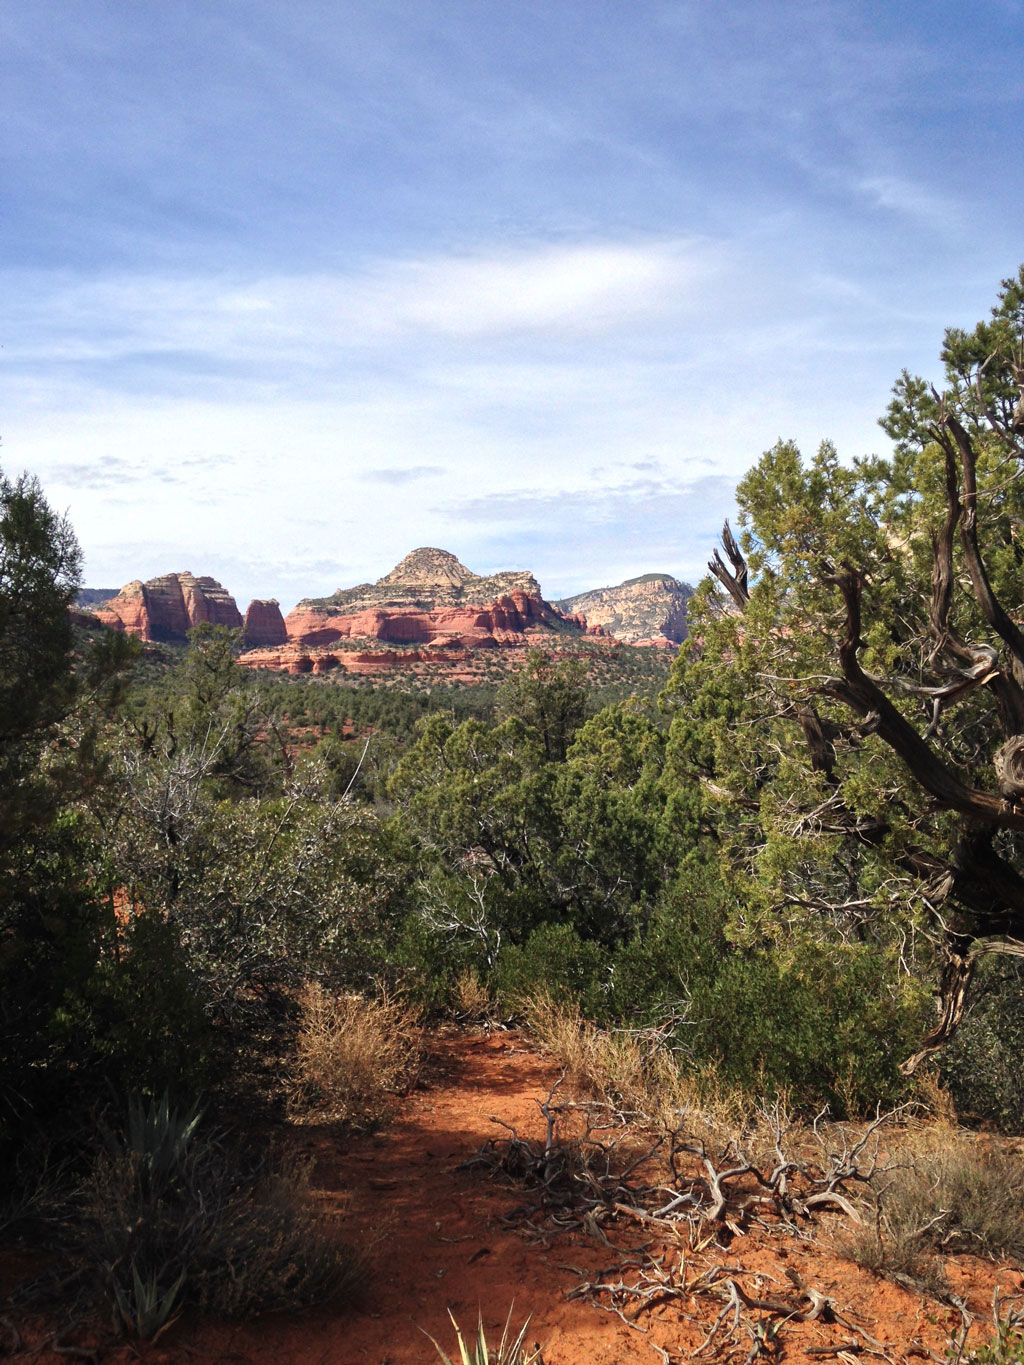 View from Chuckwagon Trail